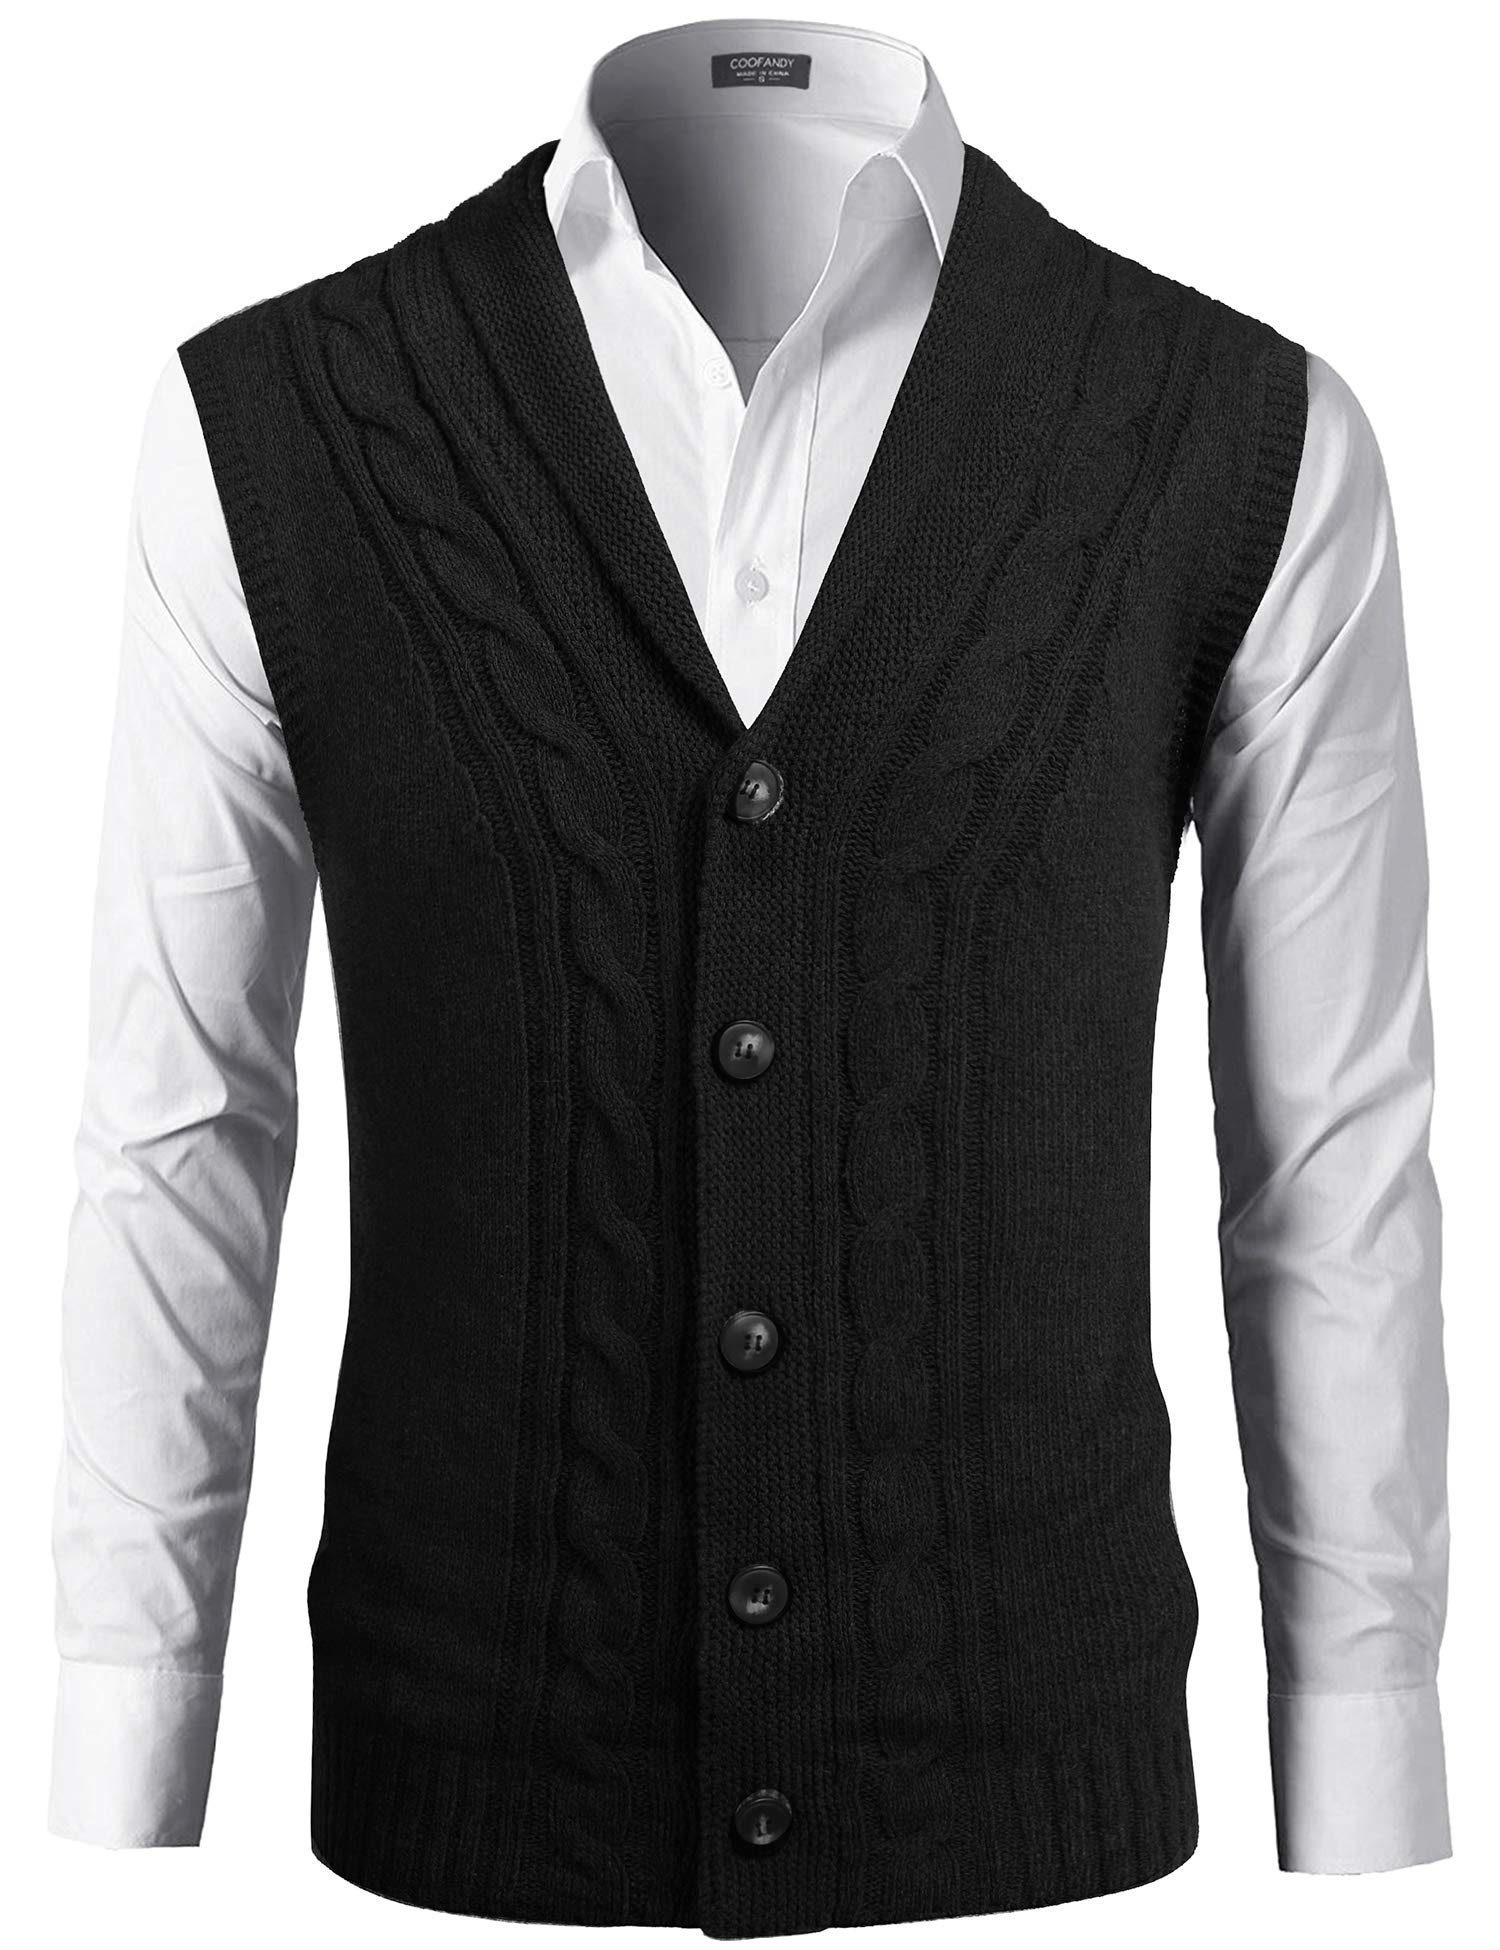 COOFANDY Mens Cardigan Sweater Vest V-Neck Sleeveless Front Button Knitwear Cardigan Waistcoat Black by COOFANDY